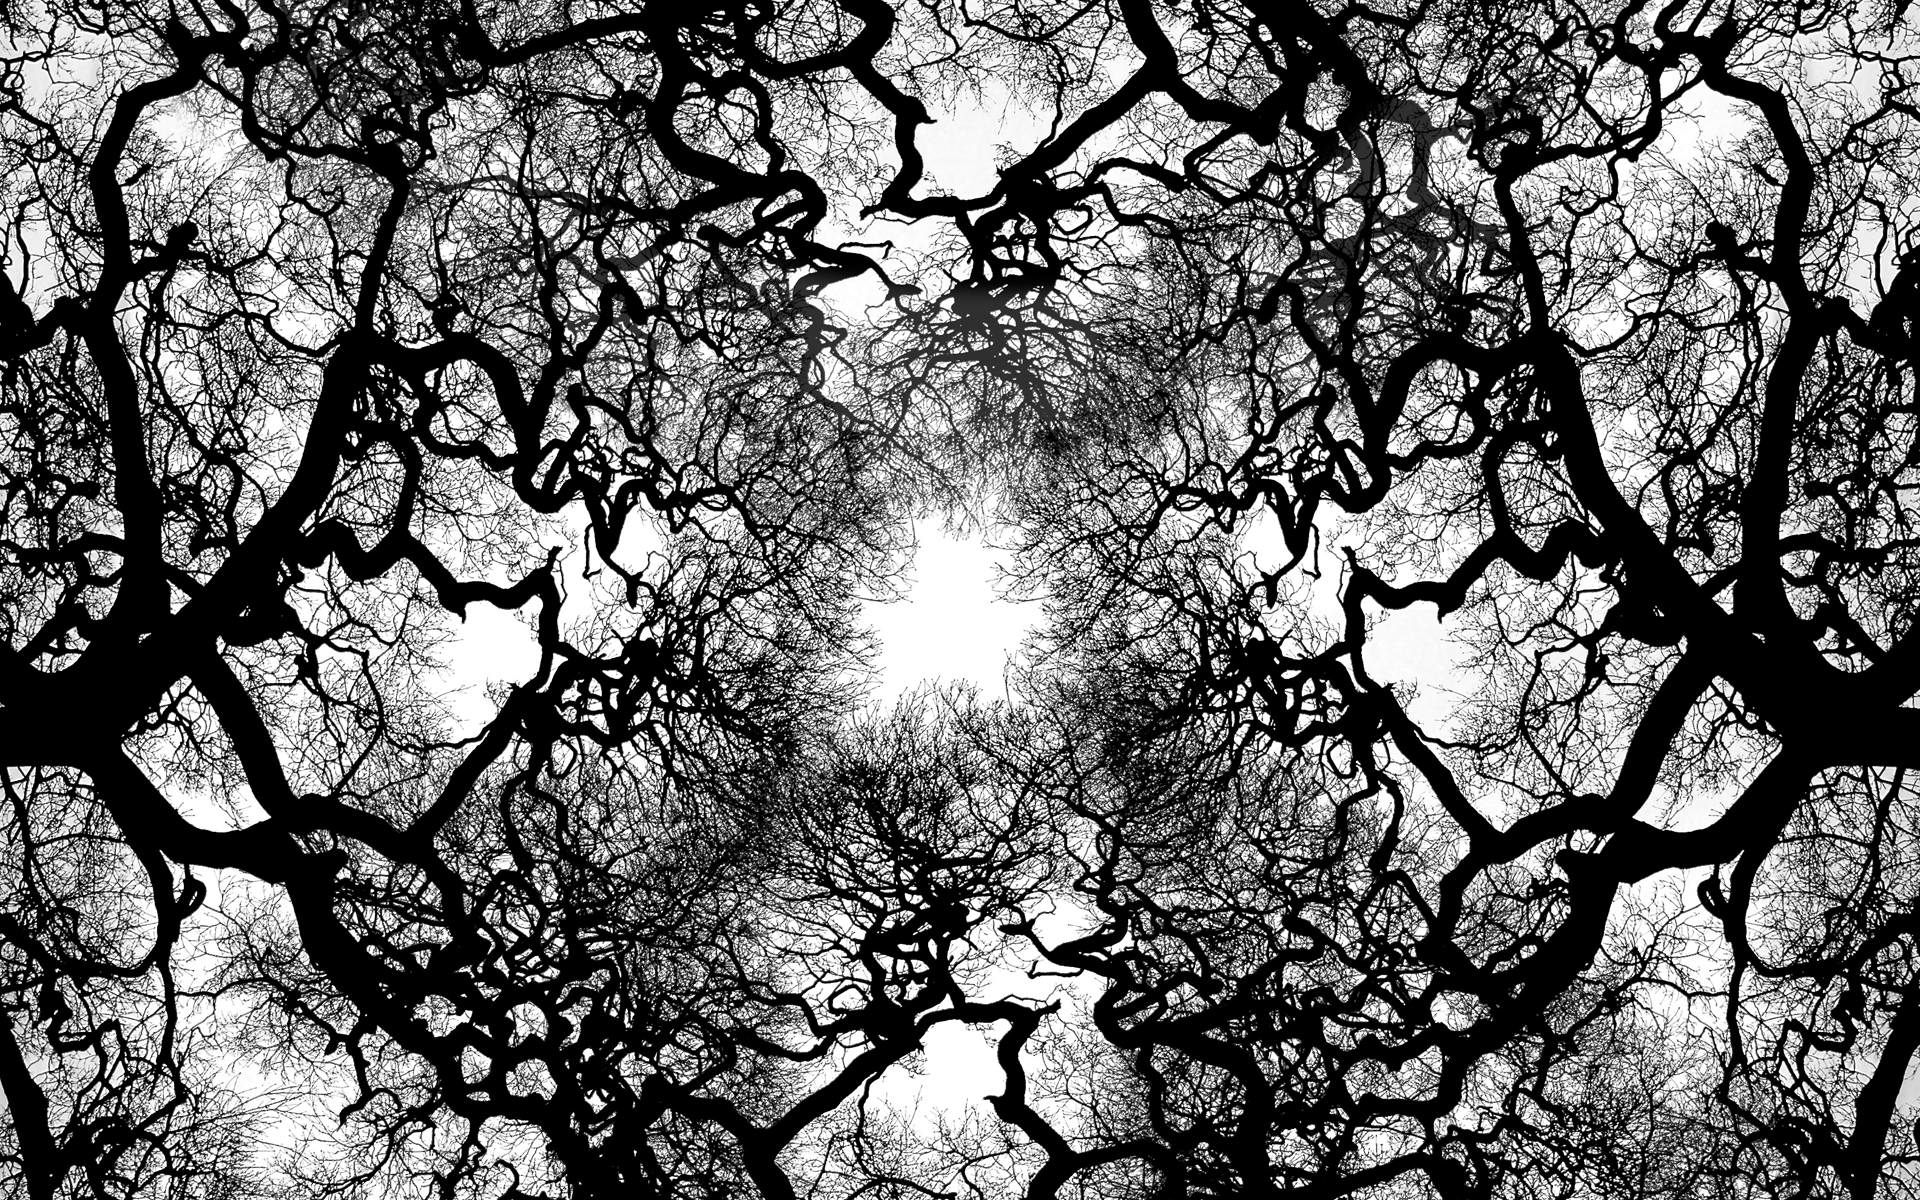 Http Img Wallpaperstock Net 81 C3 81rboles Wallpapers 29704 1920x1200 Jpg Black And White Tree Abstract Black And White Photography